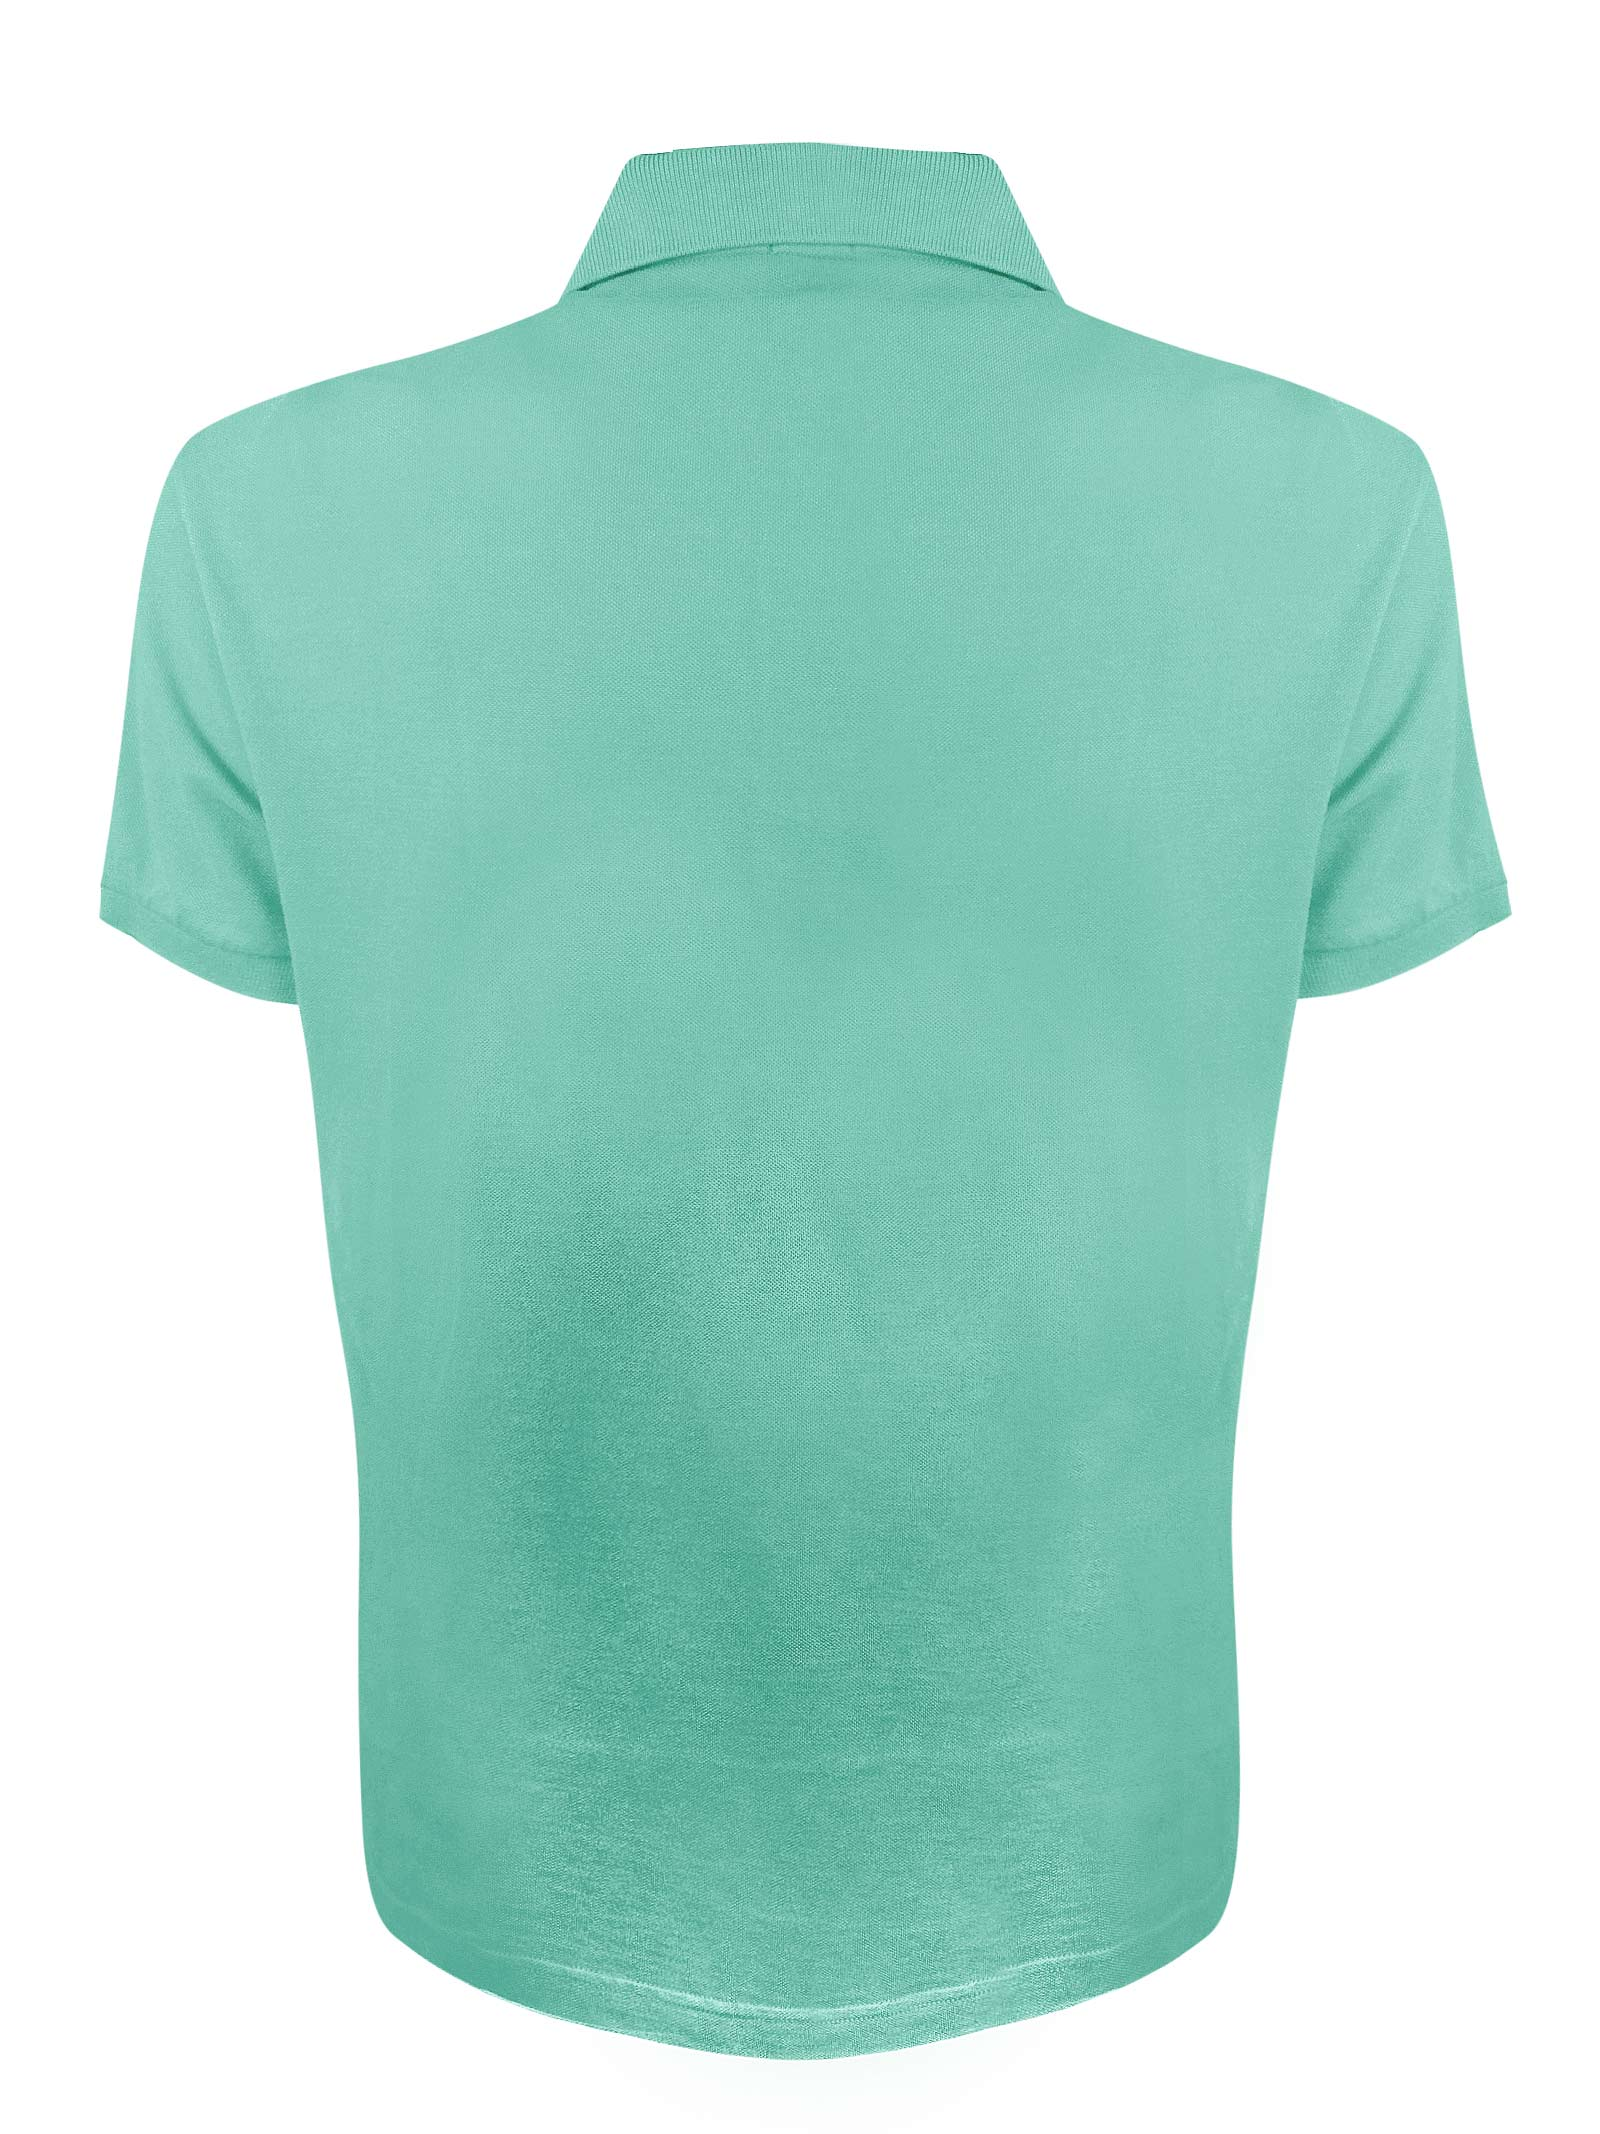 Solid color short sleeves polo BROOKSFIELD | Polos | 201A.A0327275